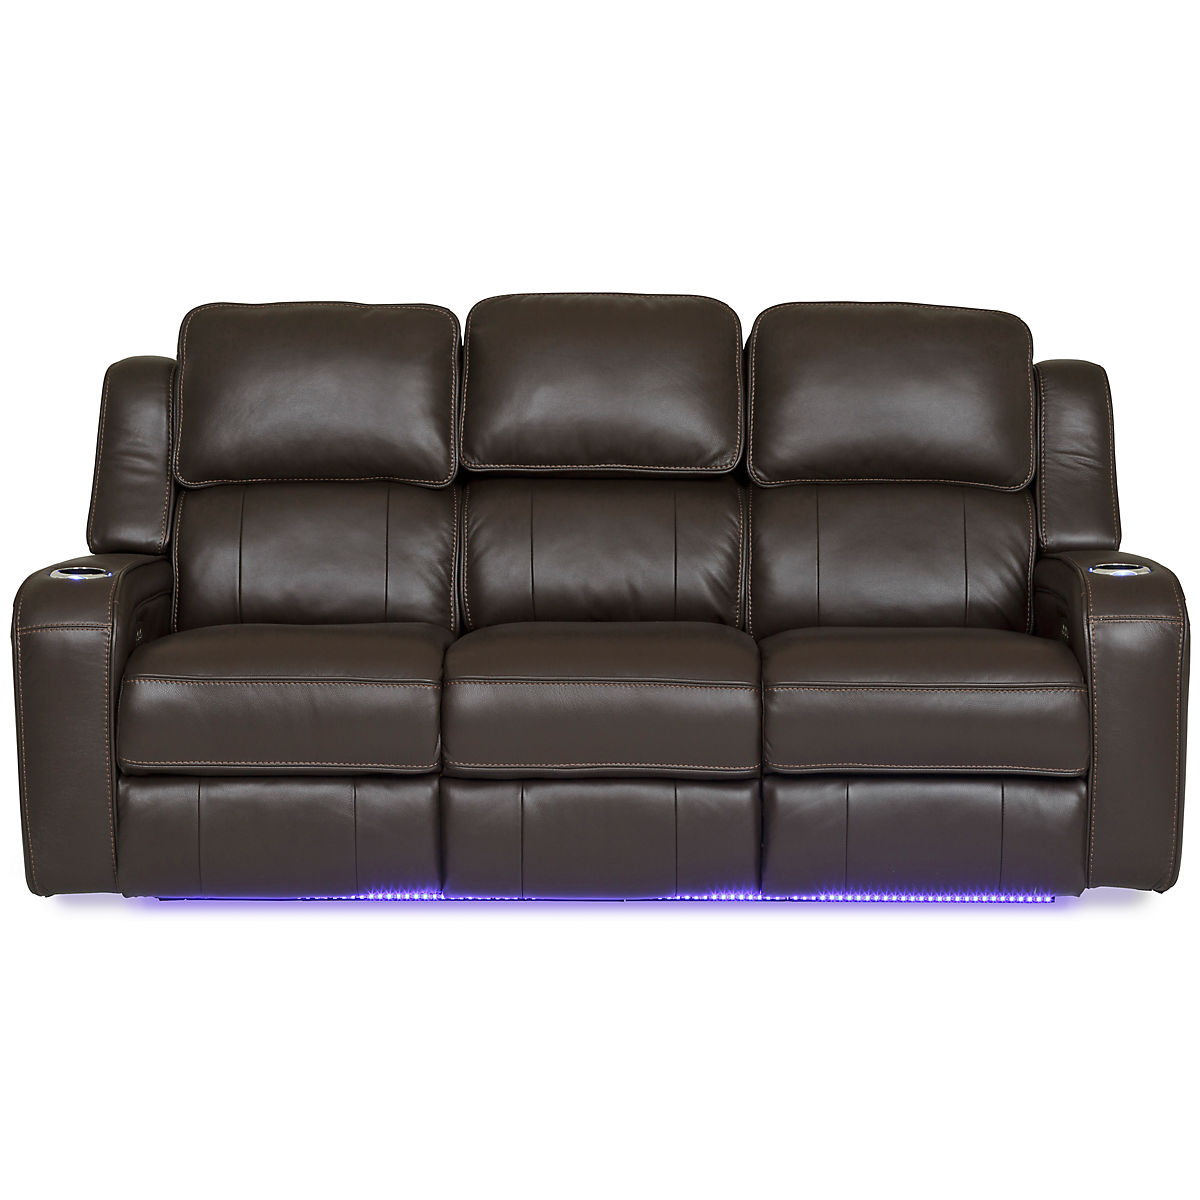 Palermo Leather Power Reclining Sofa - CHOCOLATE | Star Furniture